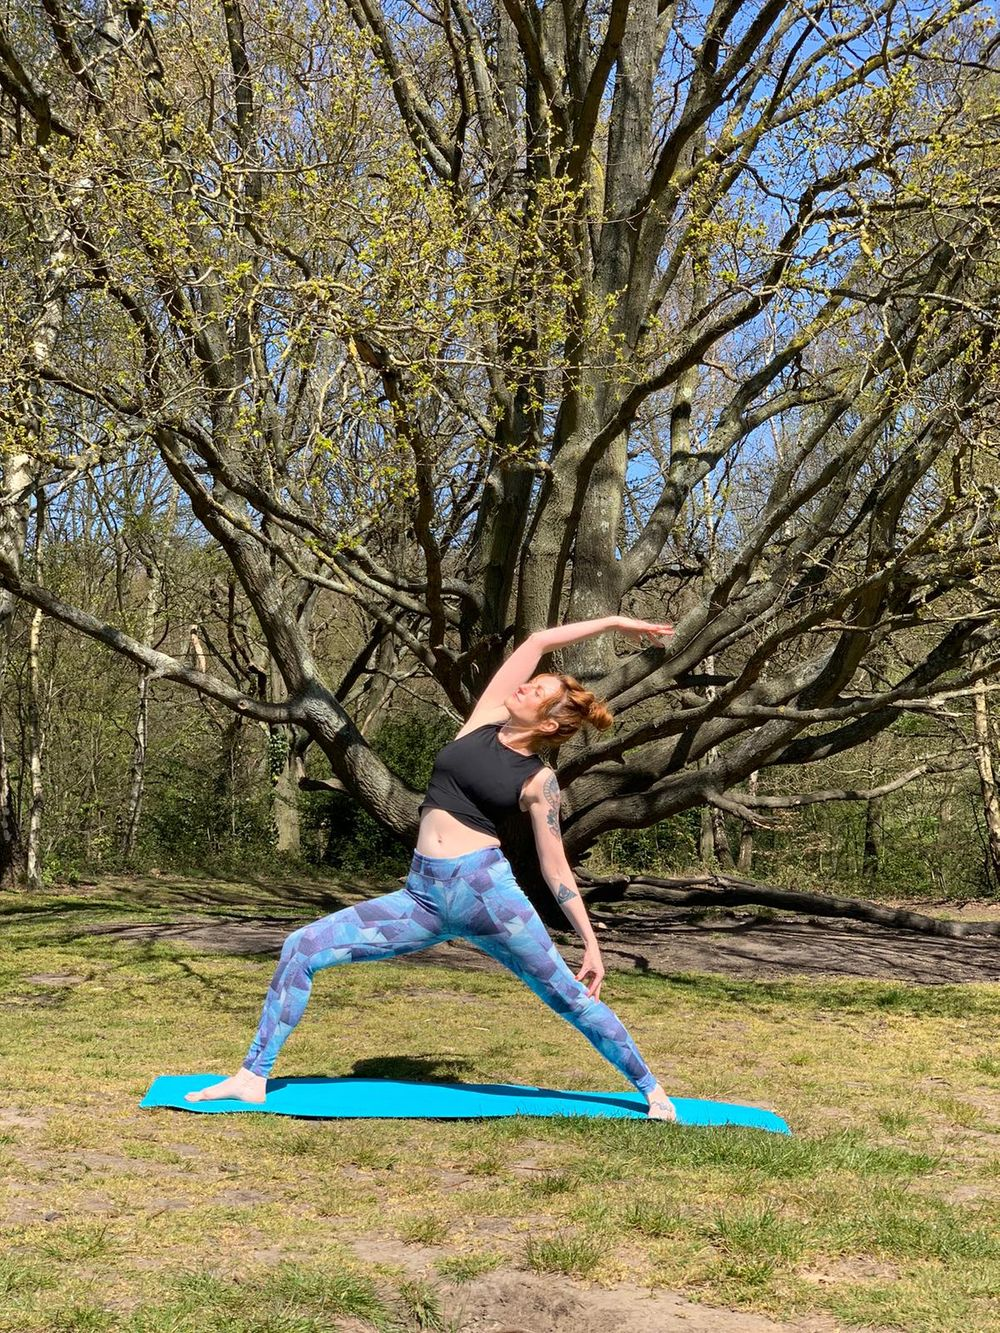 Looking forward to practicing with you on Hampstead Heath on Saturday morning.   https://bua.fit/class/C1wN68b86R87